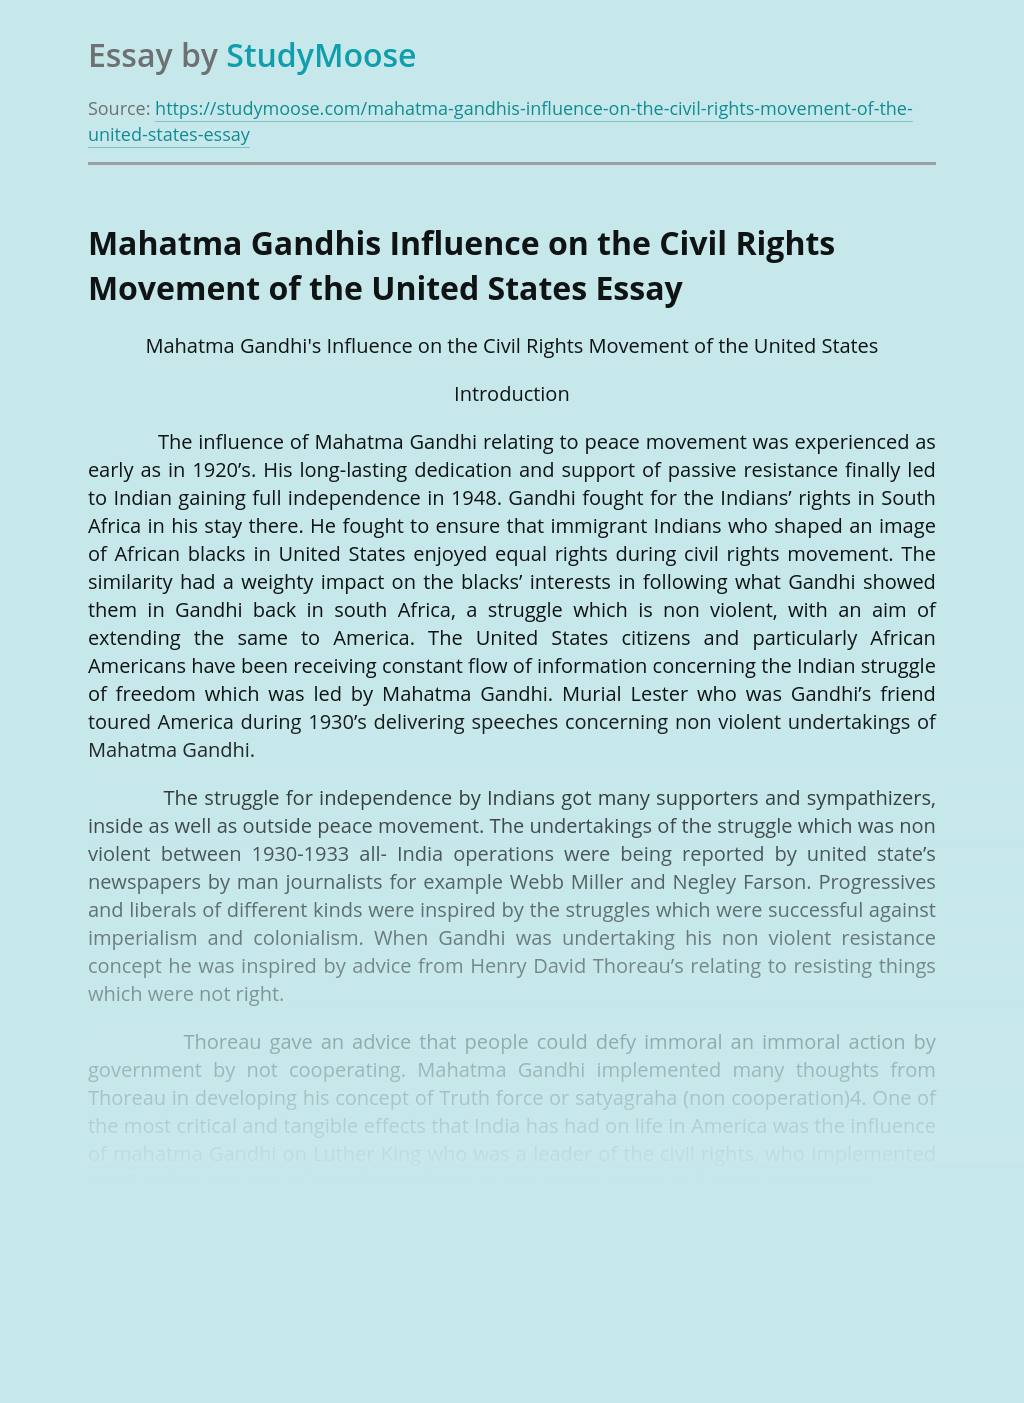 Mahatma Gandhis Influence on the Civil Rights Movement of the United States